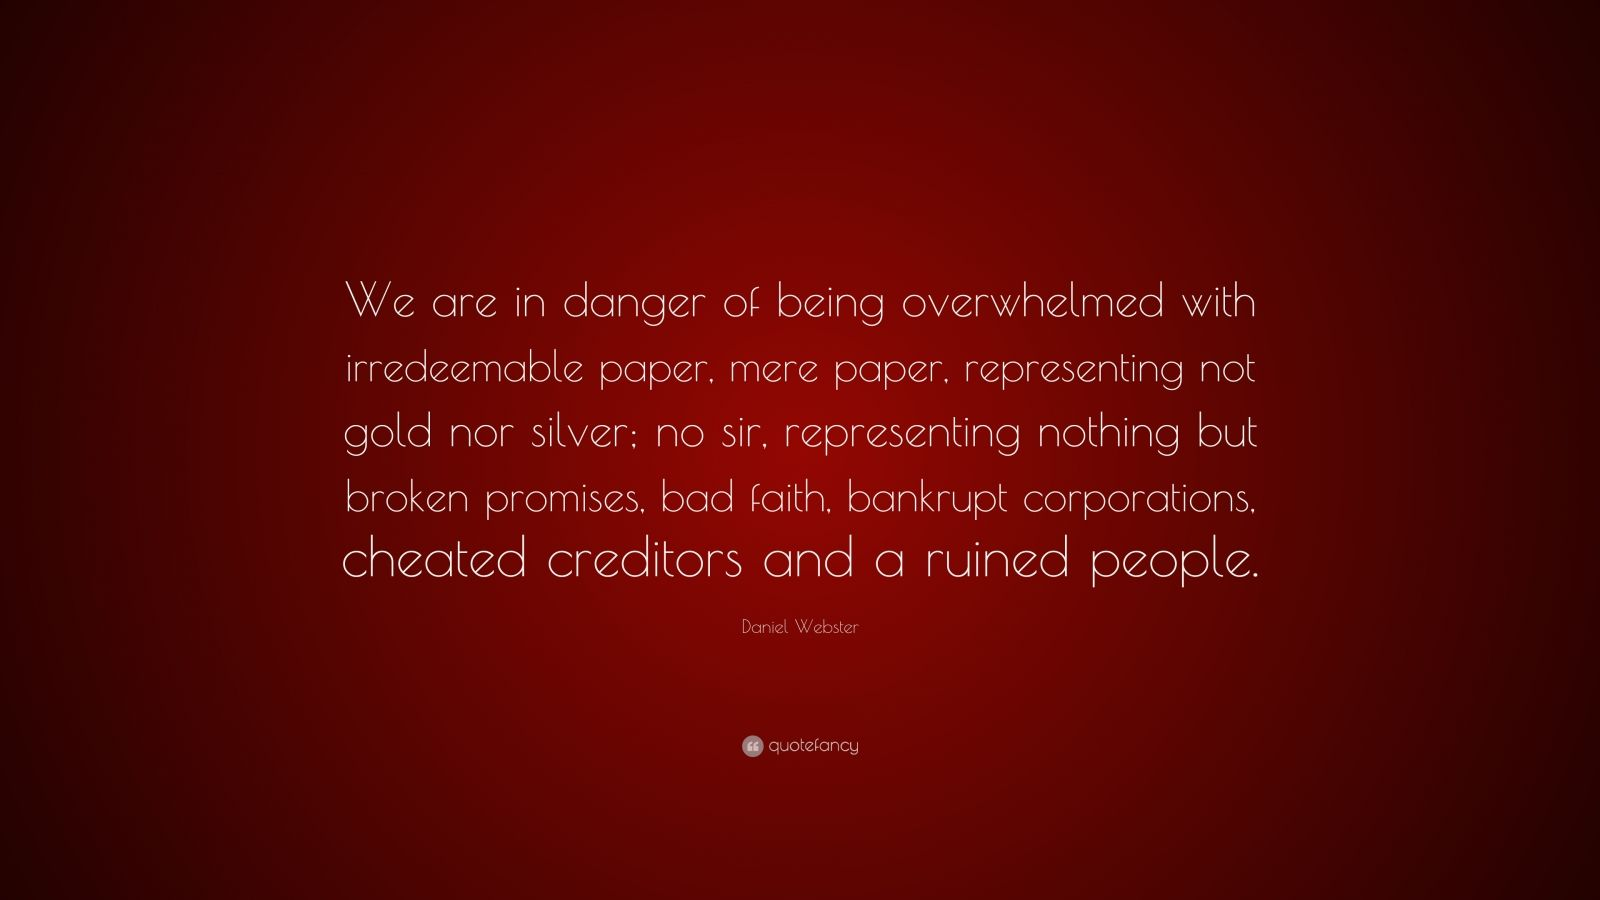 """Daniel Webster Quote: """"We are in danger of being overwhelmed with irredeemable paper, mere paper, representing not gold nor silver; no sir, representing nothing but broken promises, bad faith, bankrupt corporations, cheated creditors and a ruined people."""""""